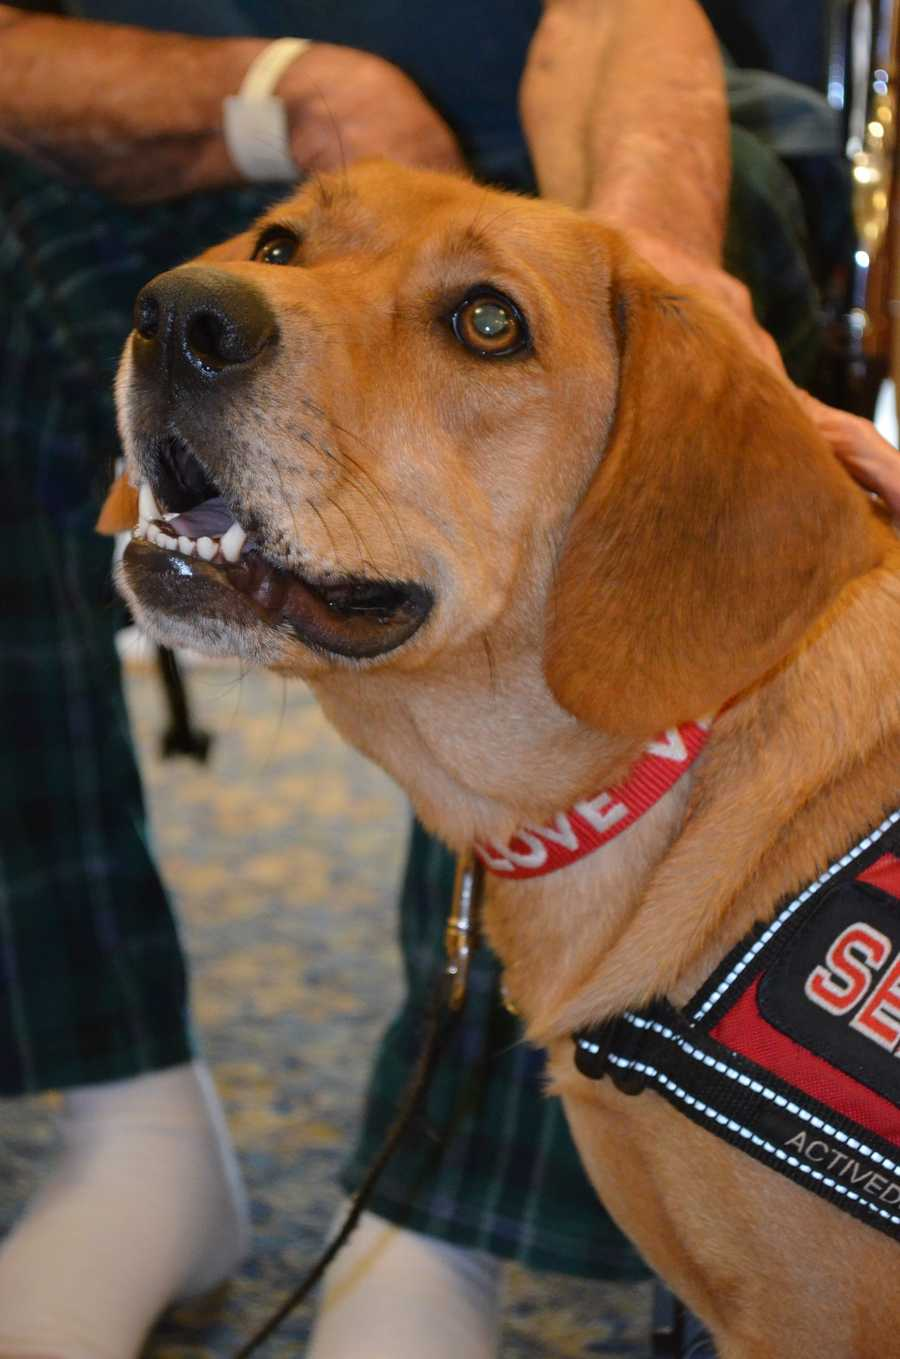 Semper Fi, Salisbury VAMC Hospice therapy animal, has recently become a full-time staff member at the hospice. She spends her weekdays at the facility and goes home with her caretaker on weekends.